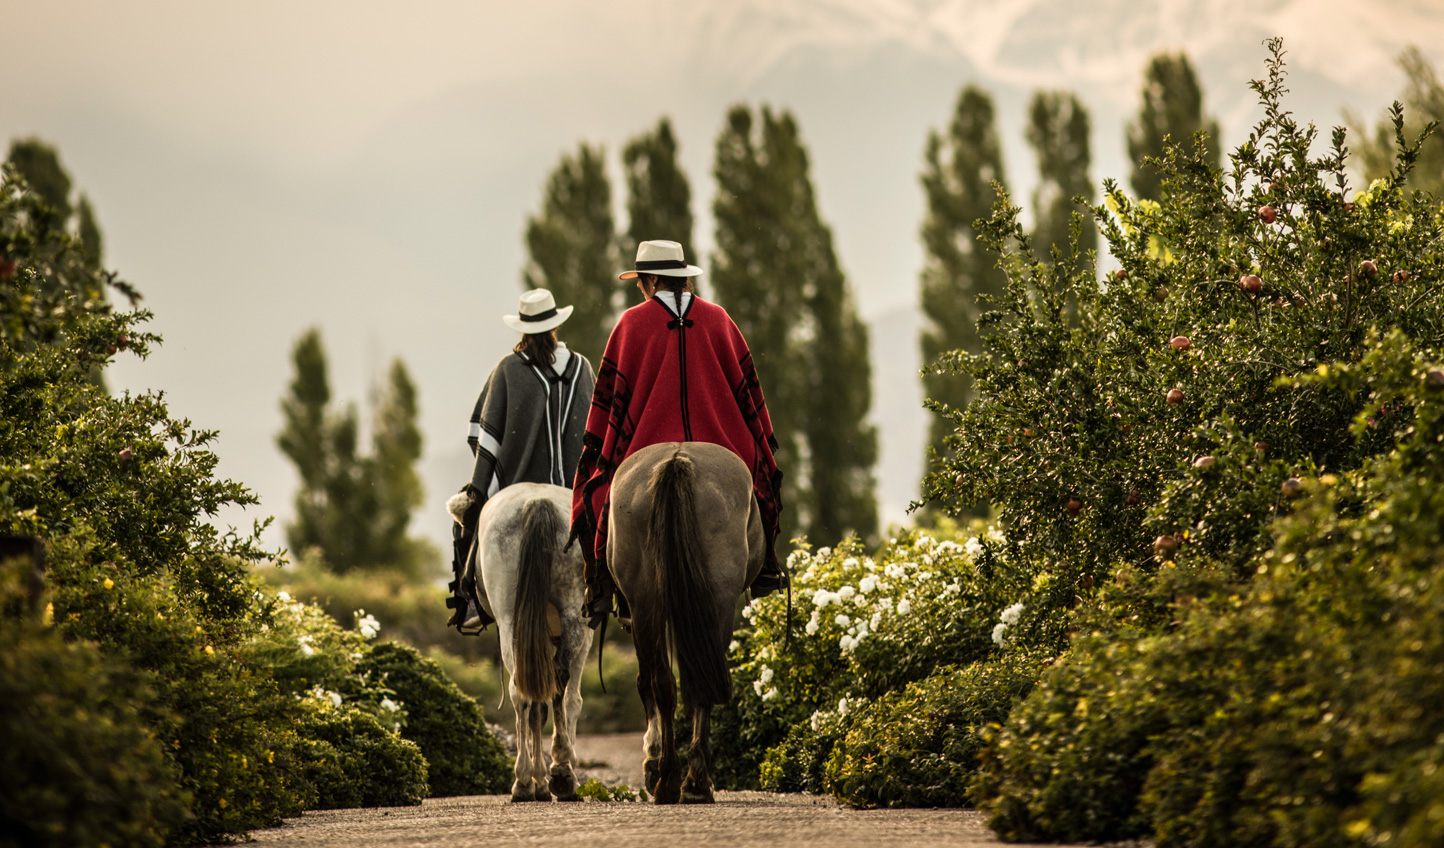 Explore the vineyards by horseback